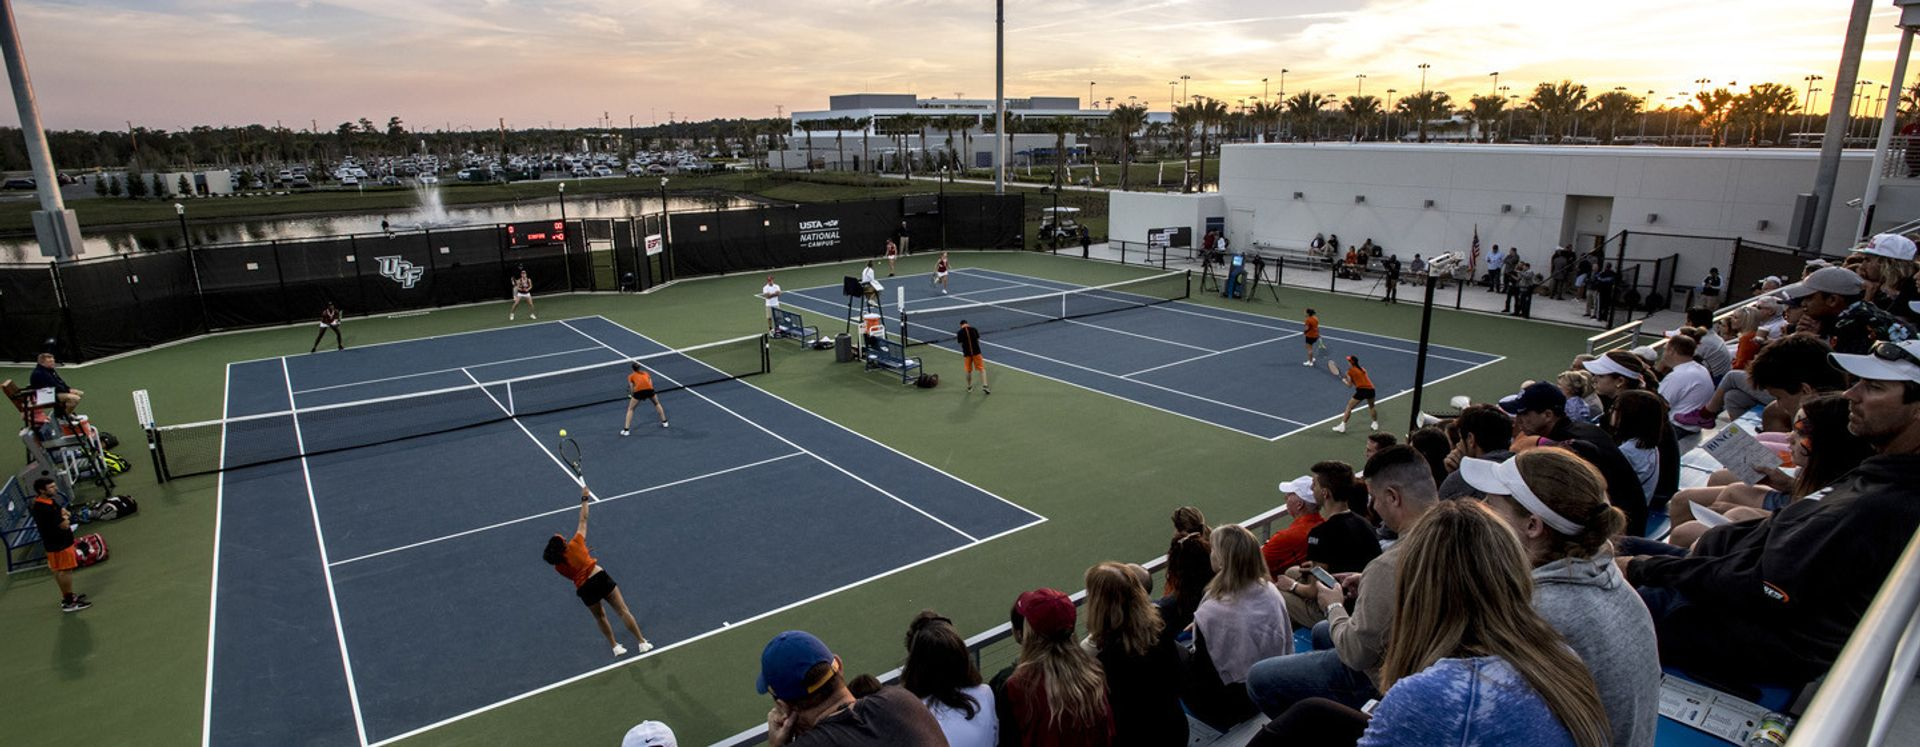 USTA Collegiate Center at Lake Nona